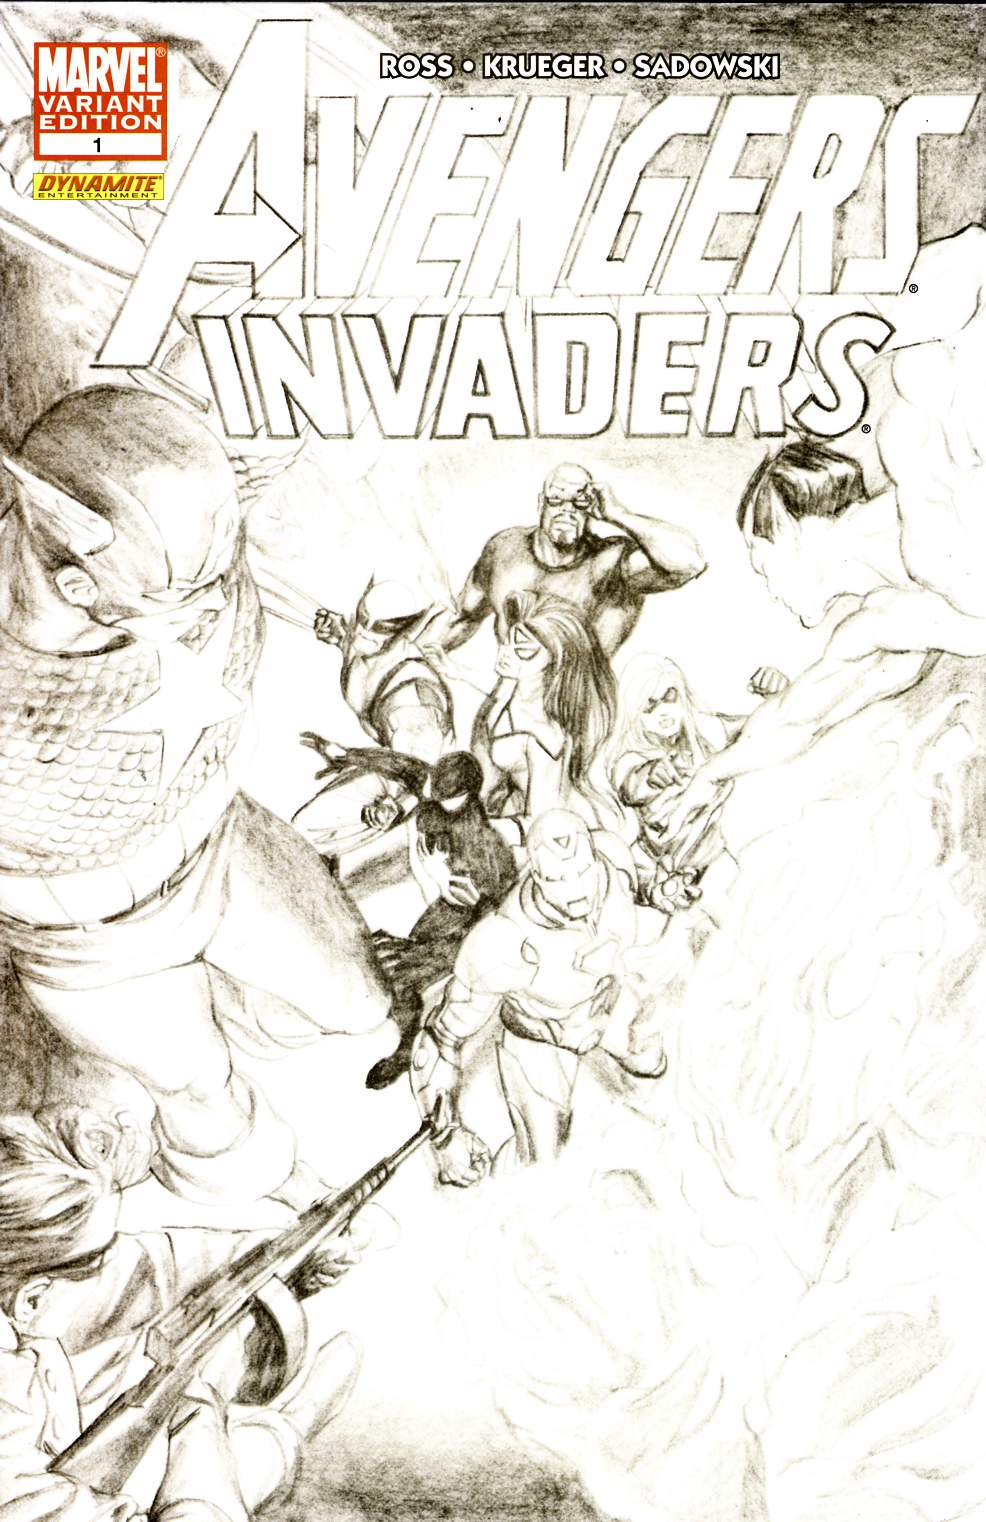 Avengers Invaders #1 Ross Sketch Variant Cover Very Fine (8.0) [Marvel Comic] THUMBNAIL